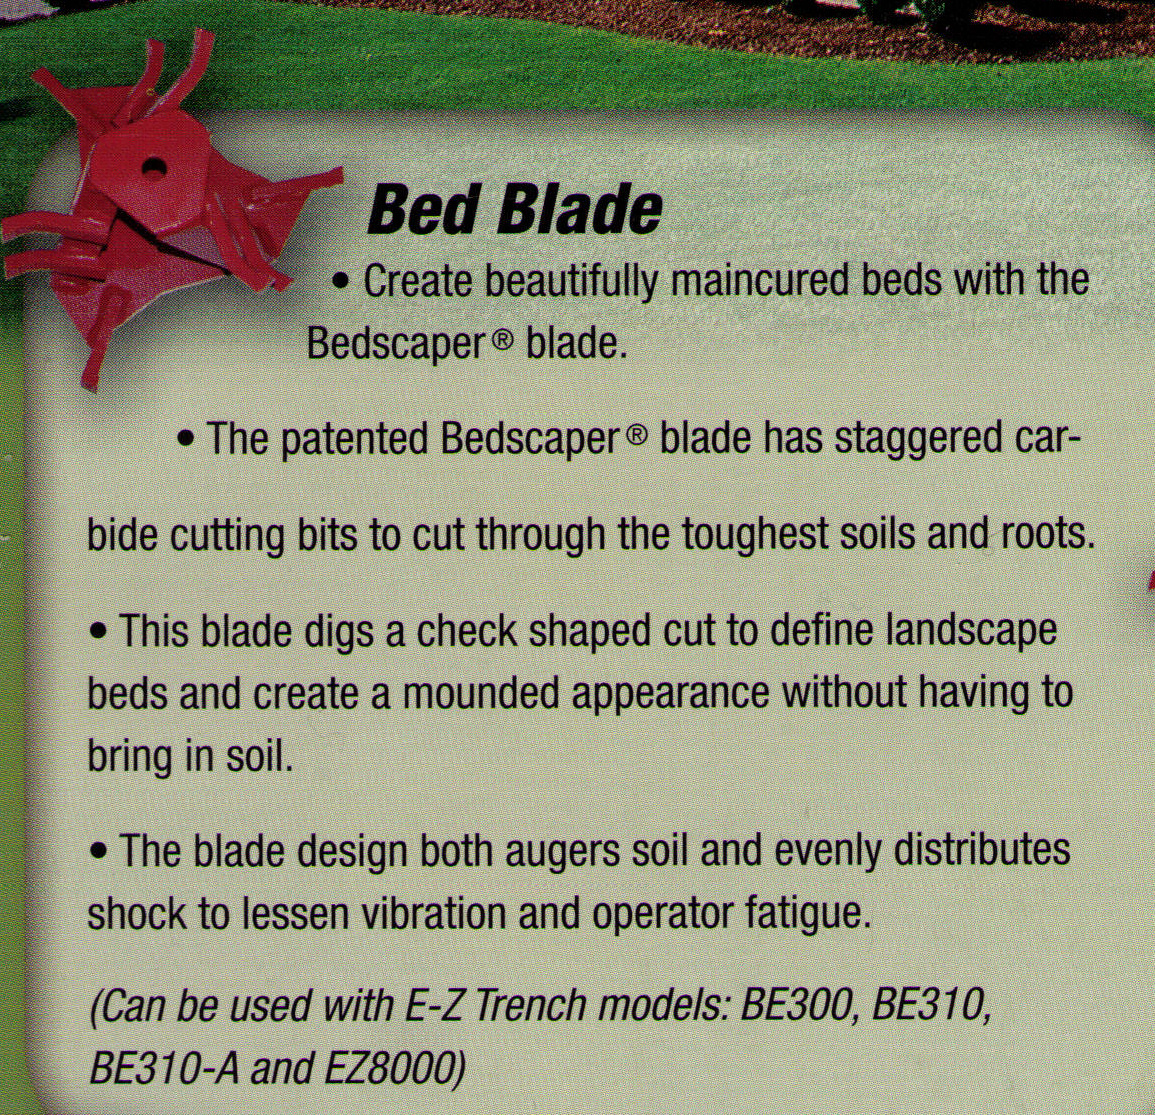 Bed Blade Bedscaper Blade